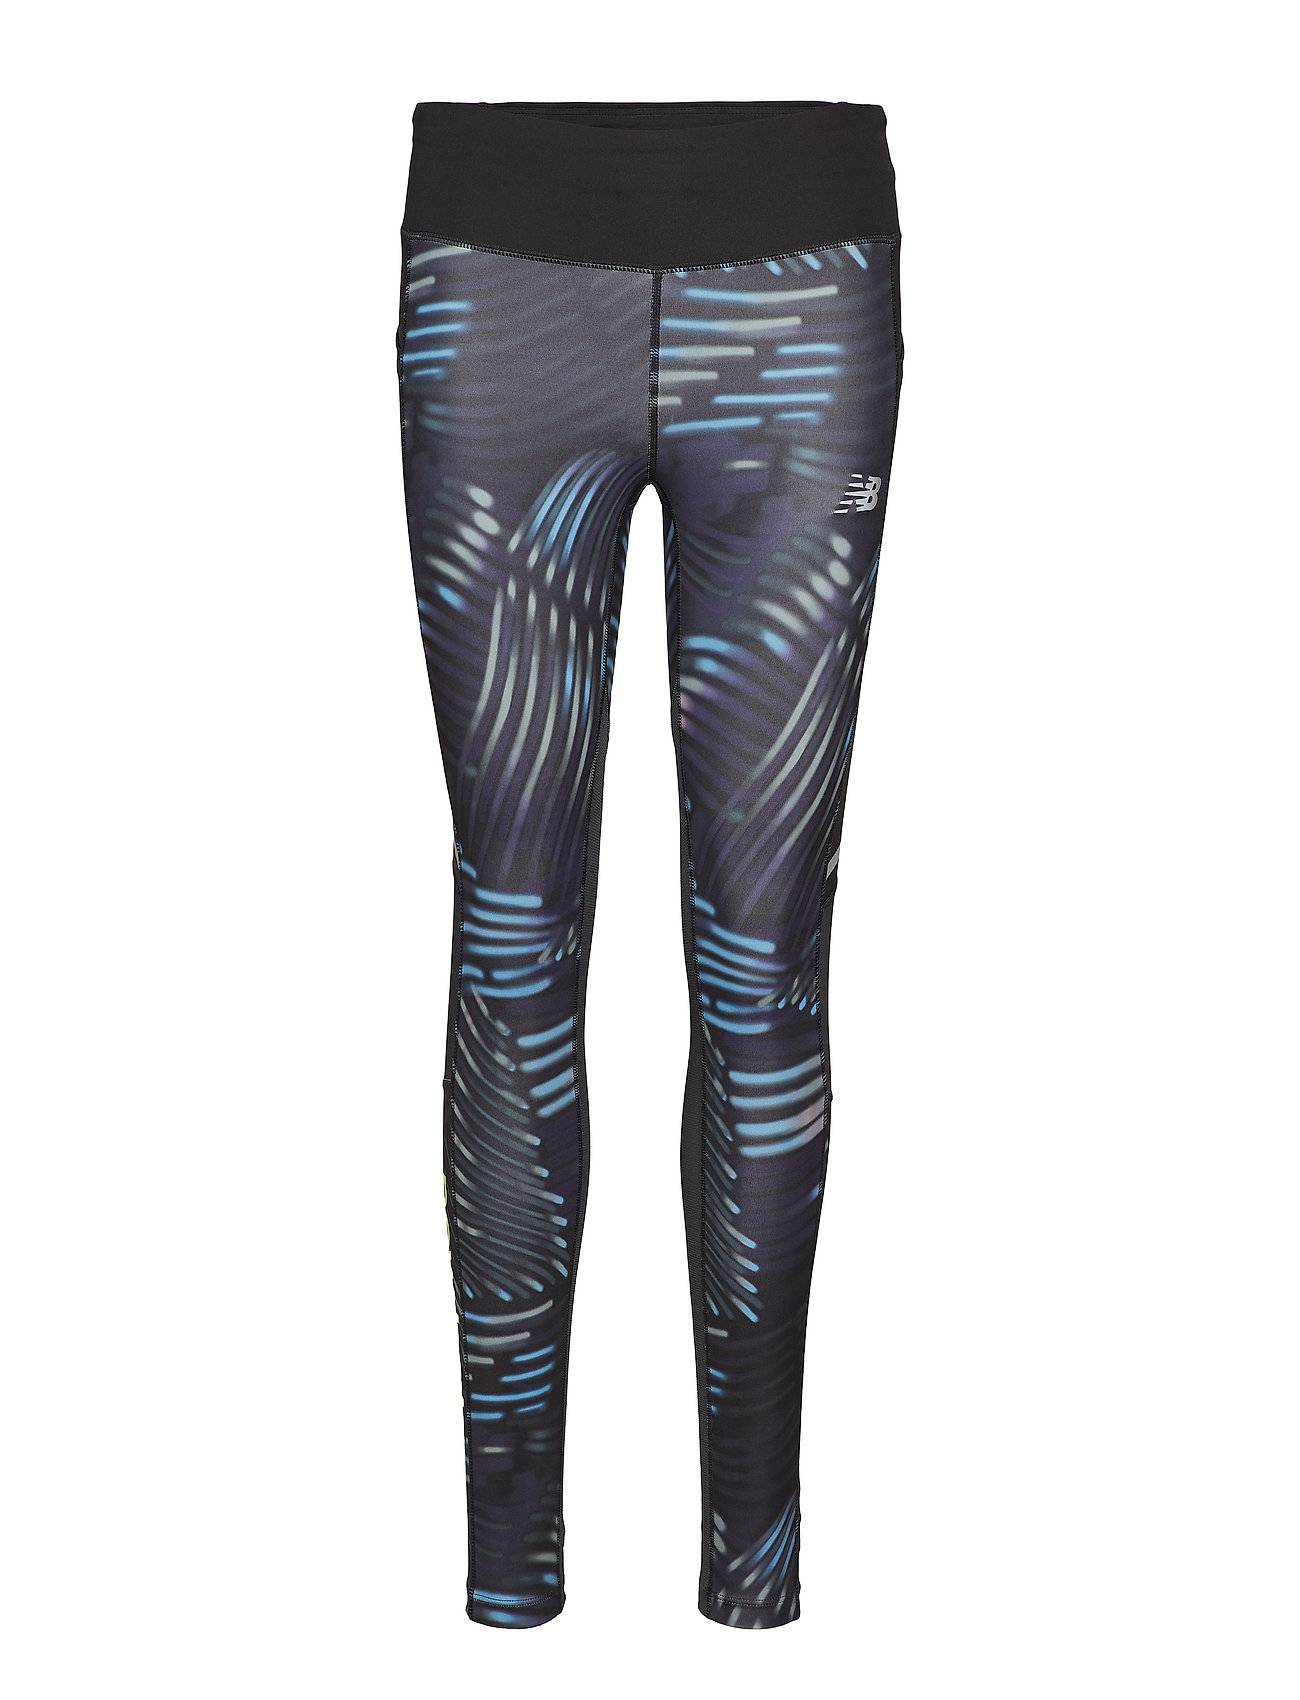 New Balance Pt Imt Tight Prt